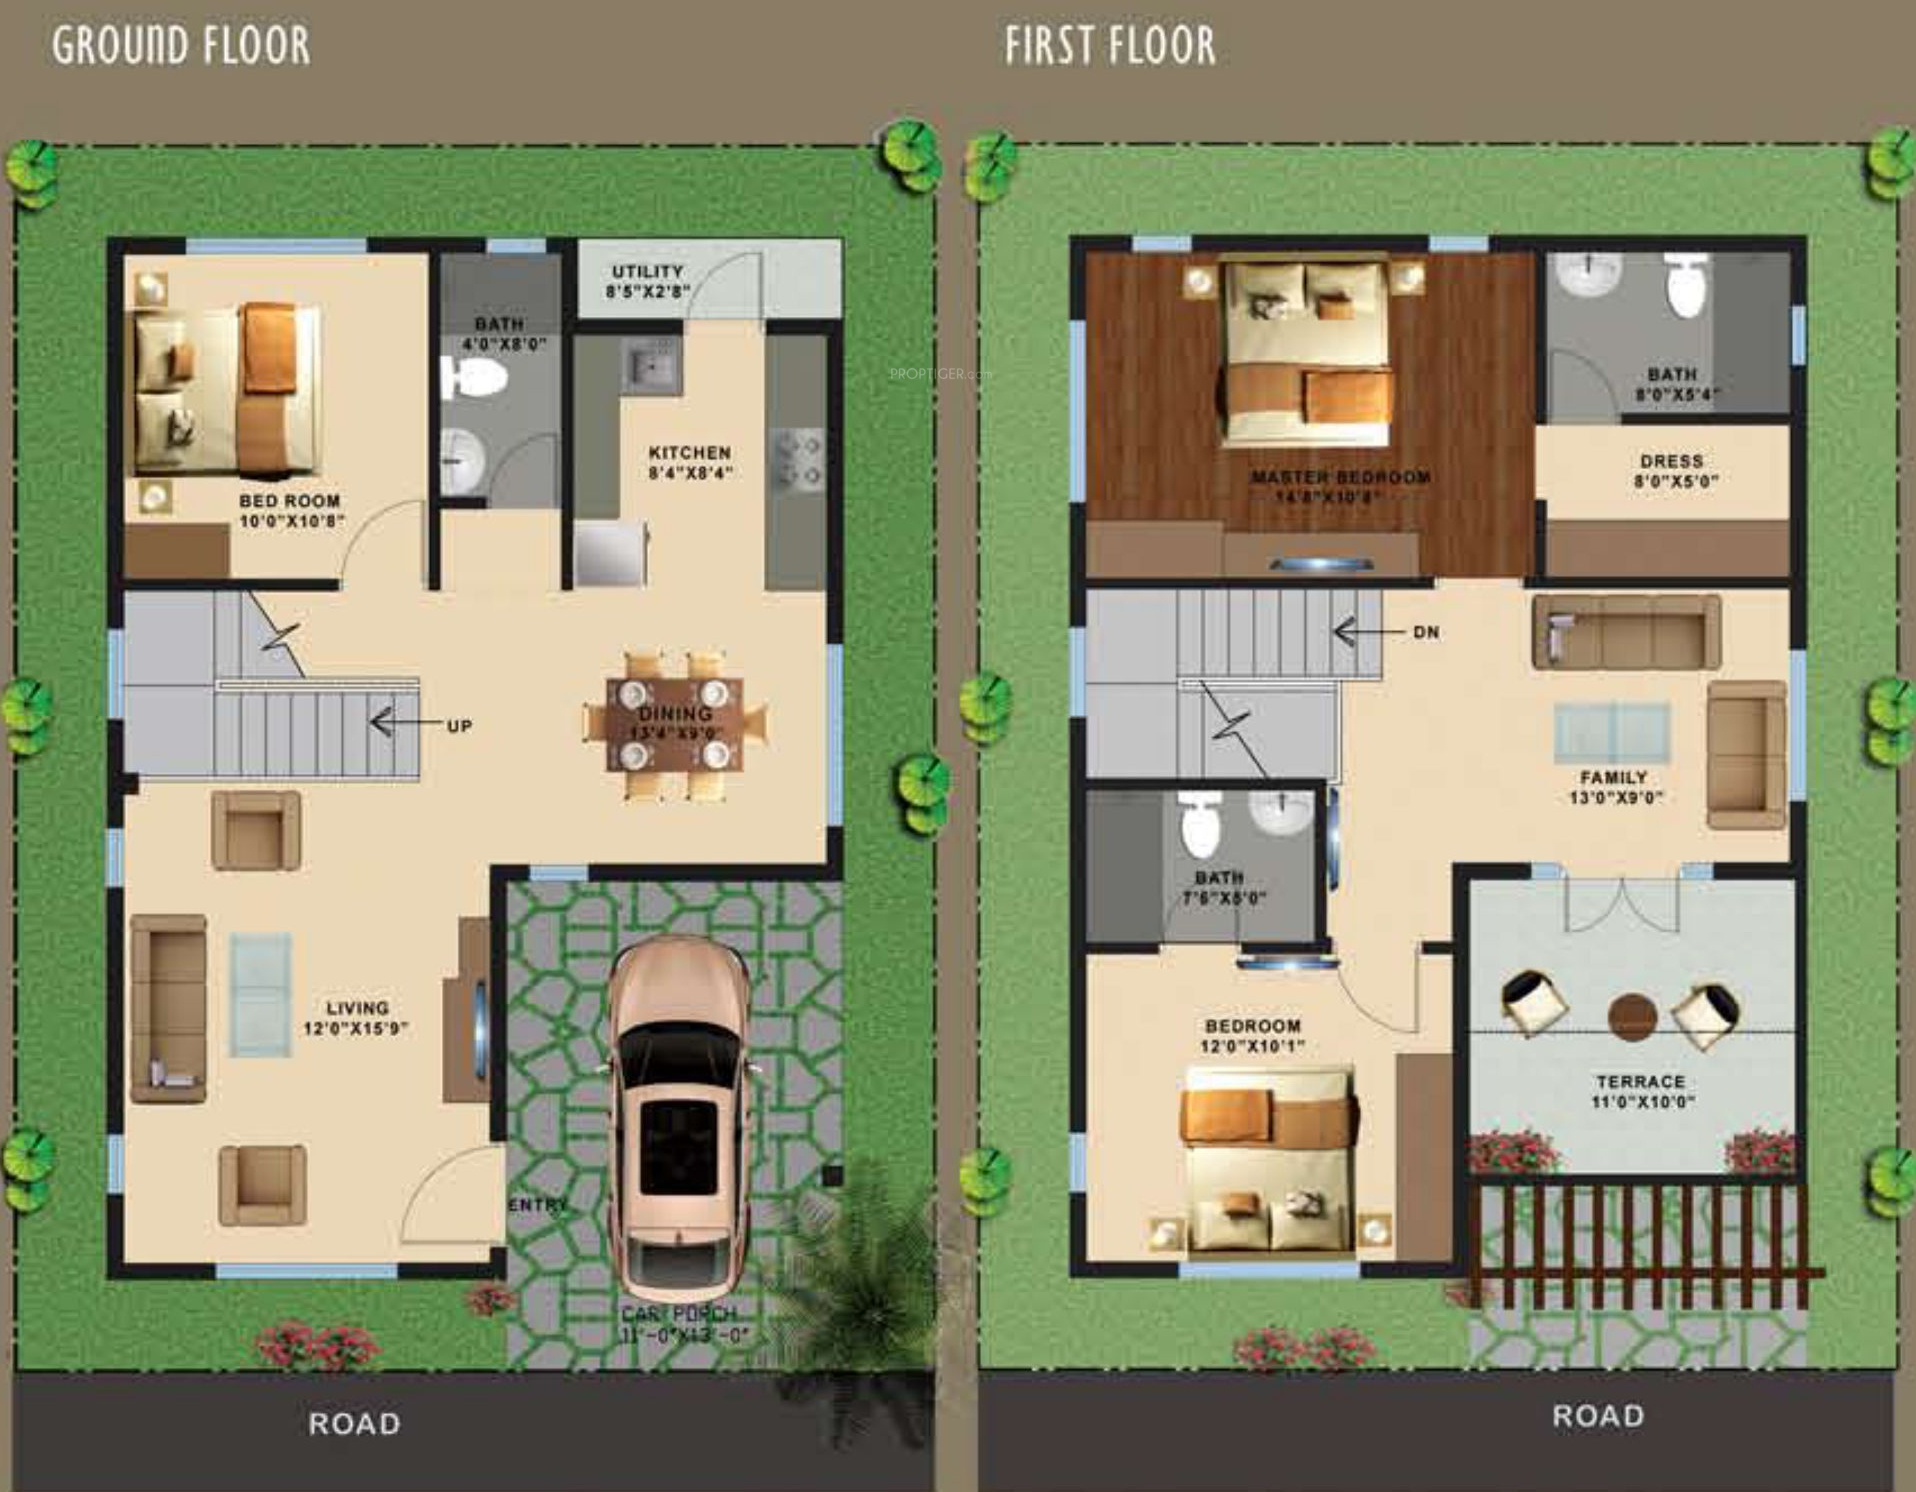 House plan for 1500 sq ft bangalore for 30x50 duplex house plans